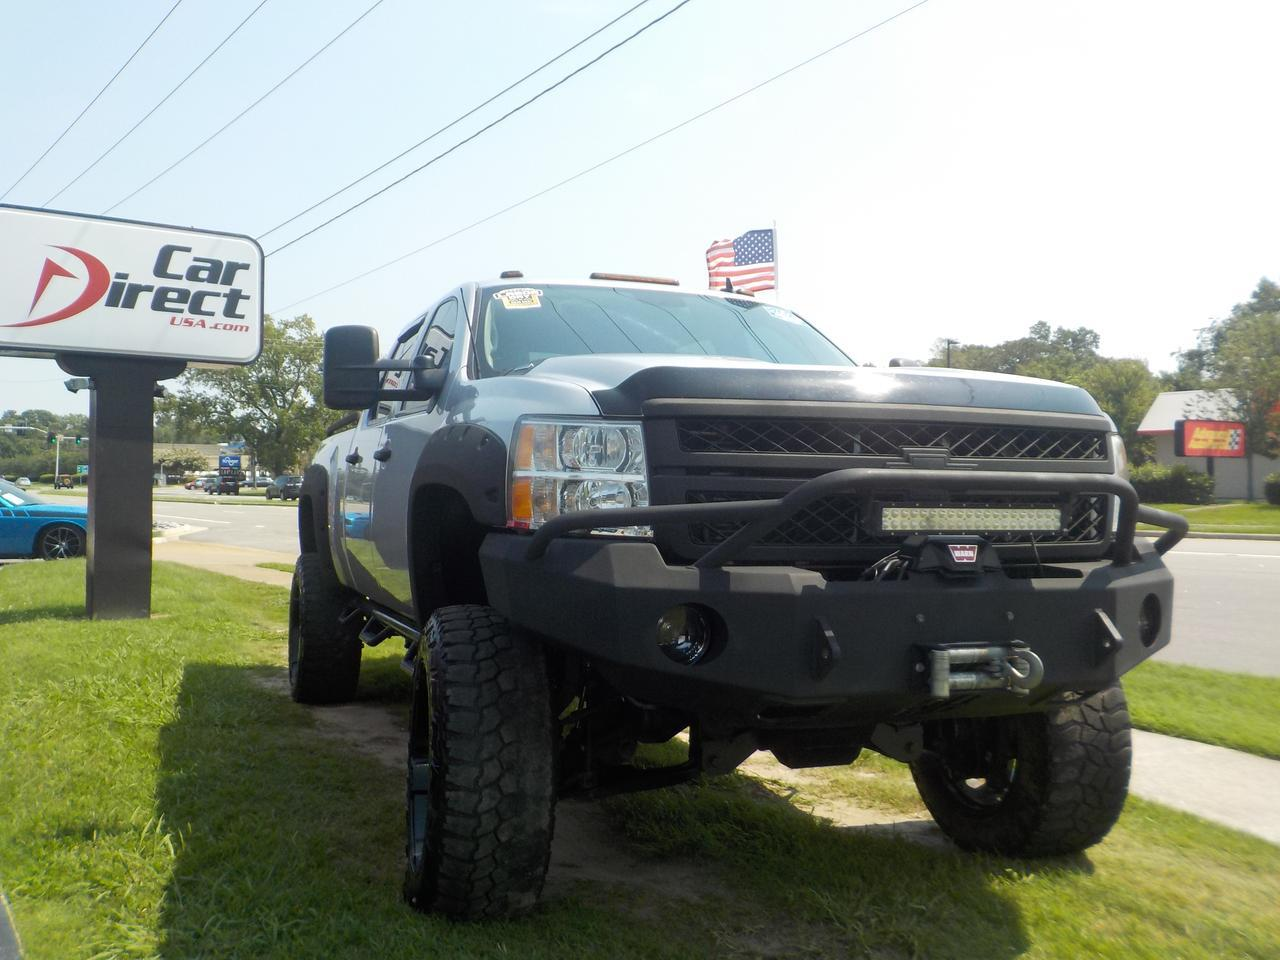 2013 CHEVROLET SILVERADO 2500 HD LT 4X4 6.6L DURAMAX DIESEL, LEATHER, LIFTED, WINCH, ALLISON TRANSMISSION, INSANE TRUCK!!! Virginia Beach VA